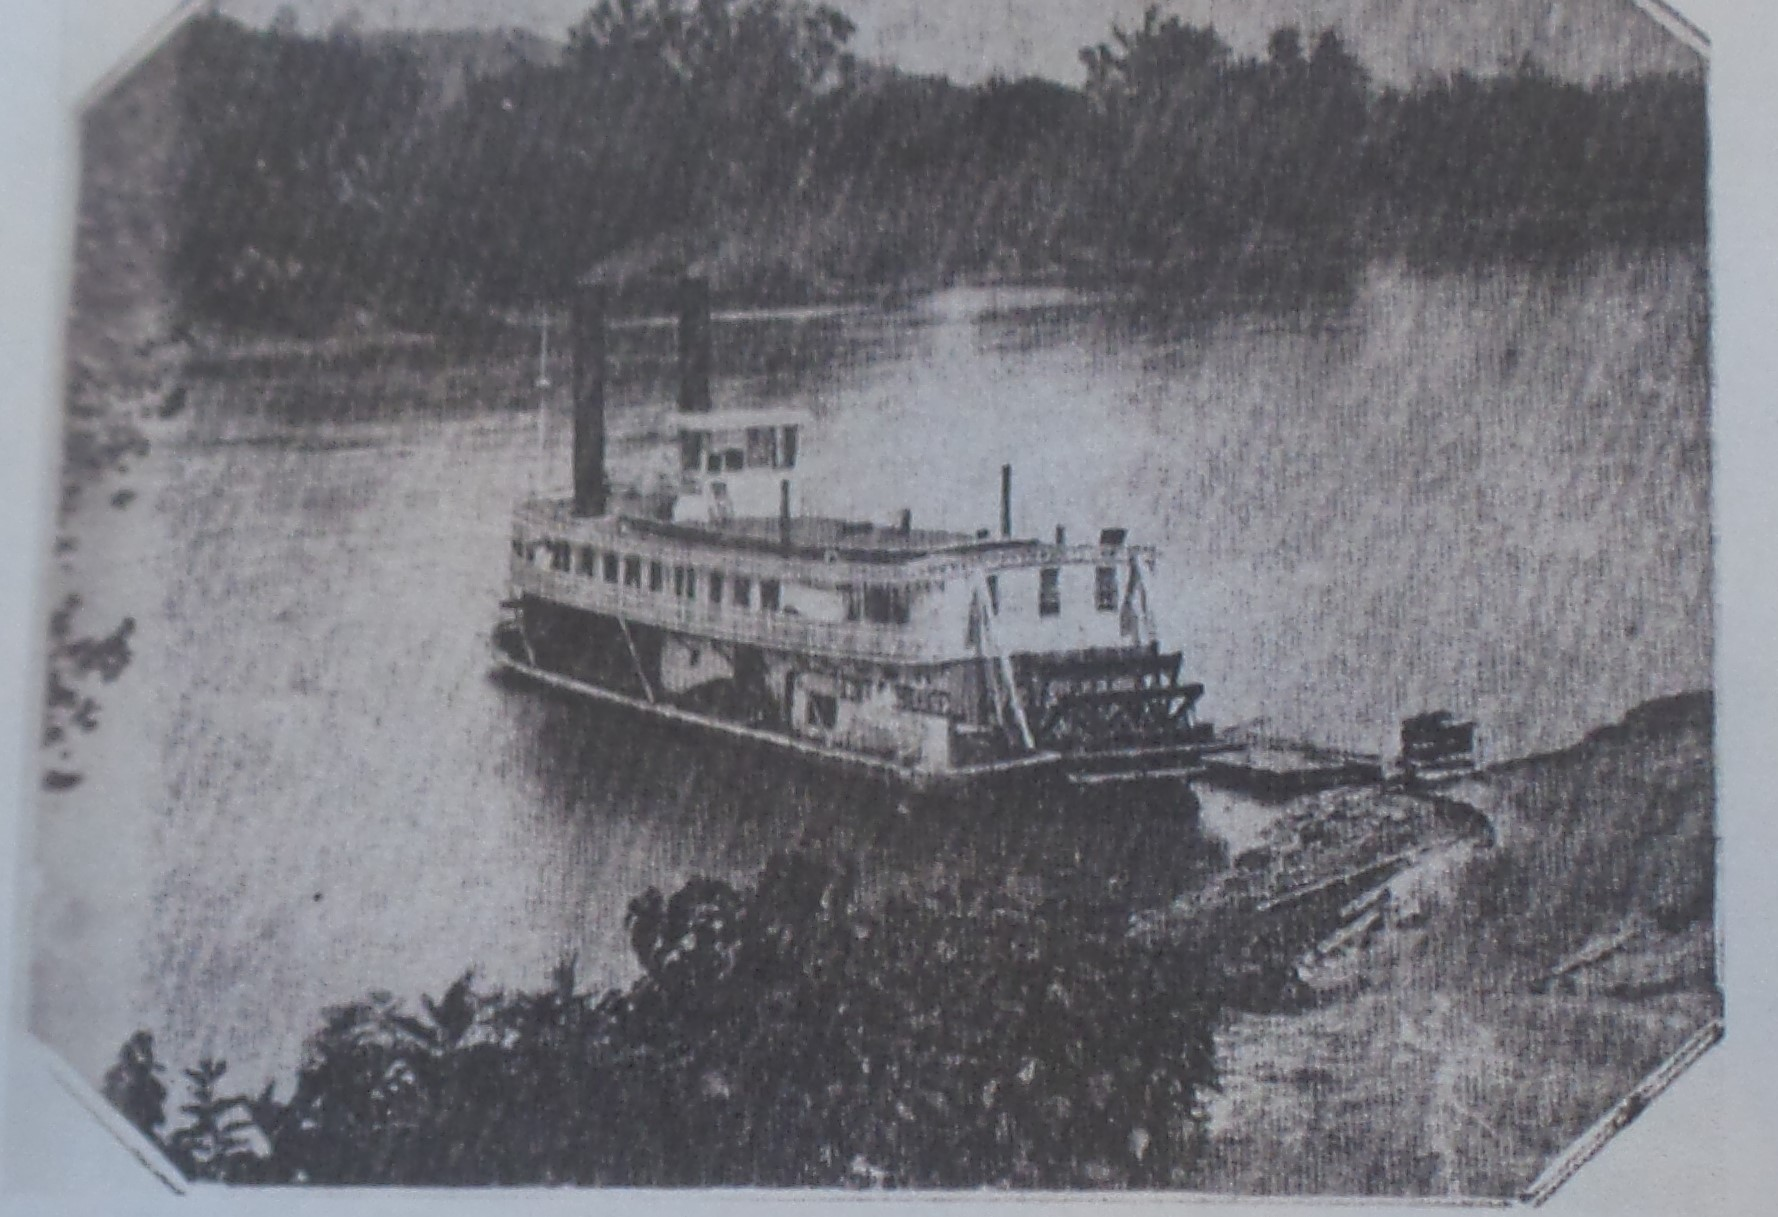 Stream boat docked at Buffalo early 1900s